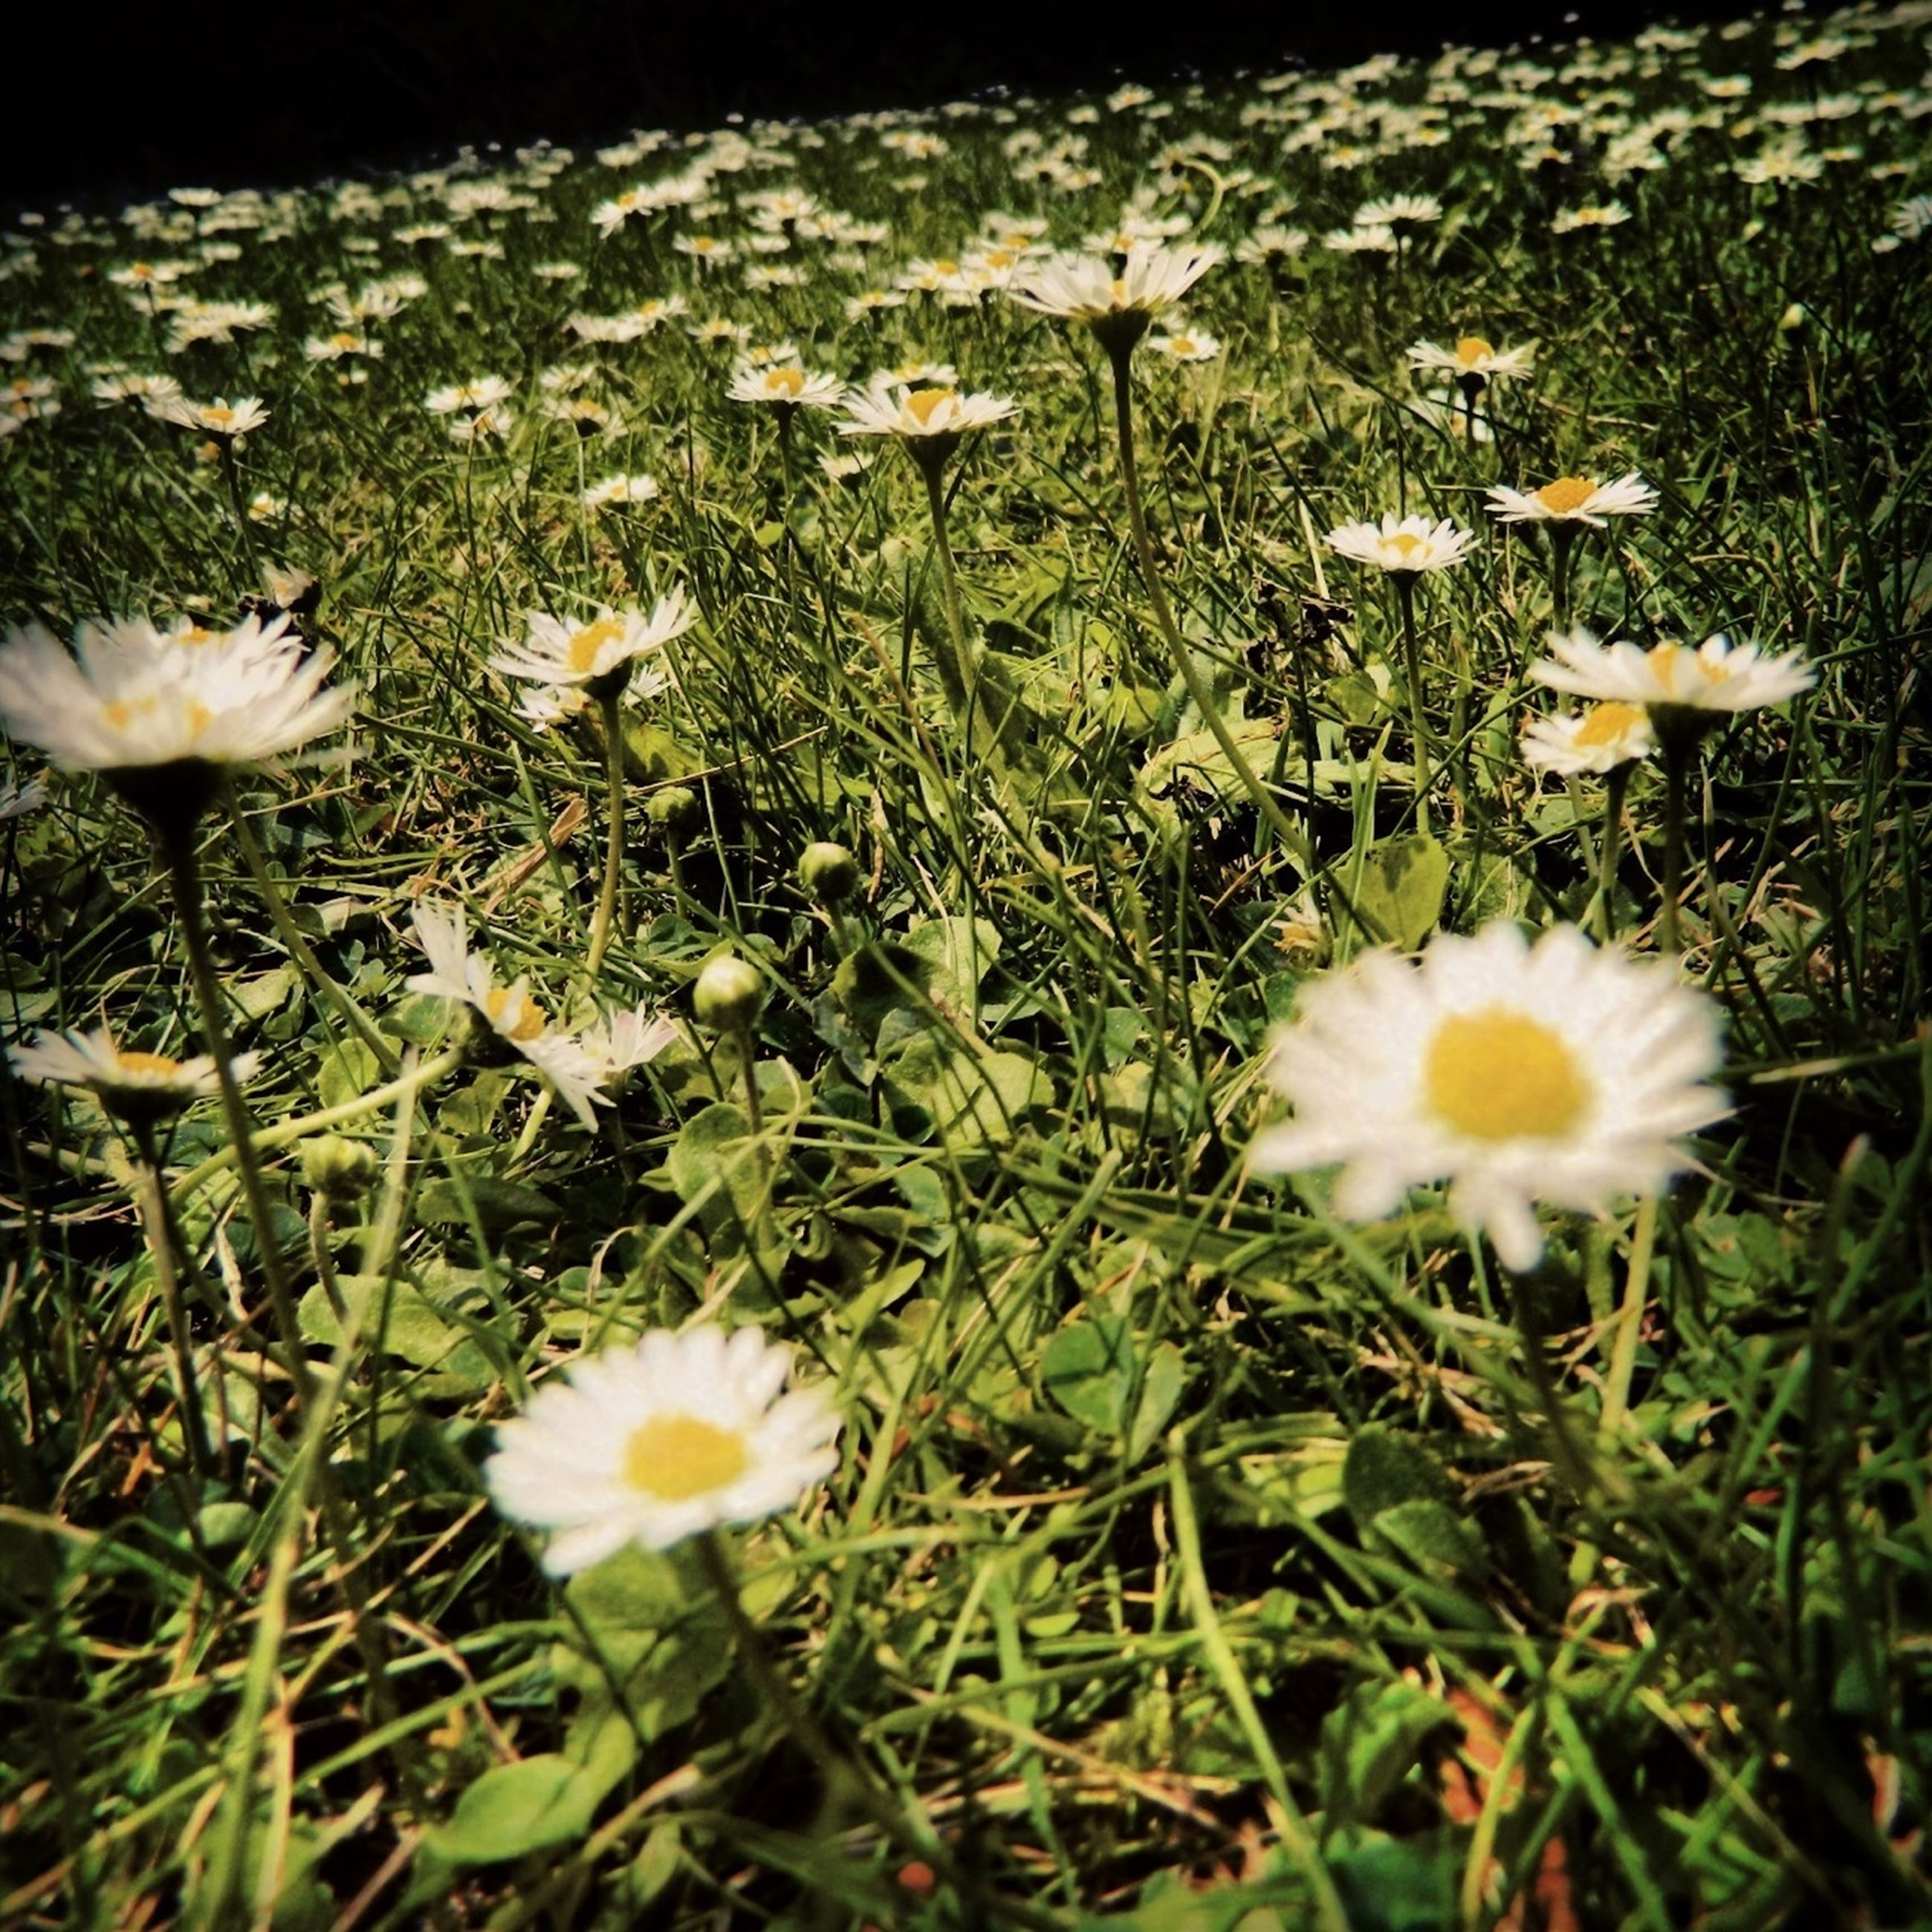 flower, freshness, growth, fragility, petal, field, white color, beauty in nature, grass, daisy, plant, blooming, nature, flower head, green color, high angle view, wildflower, meadow, in bloom, stem